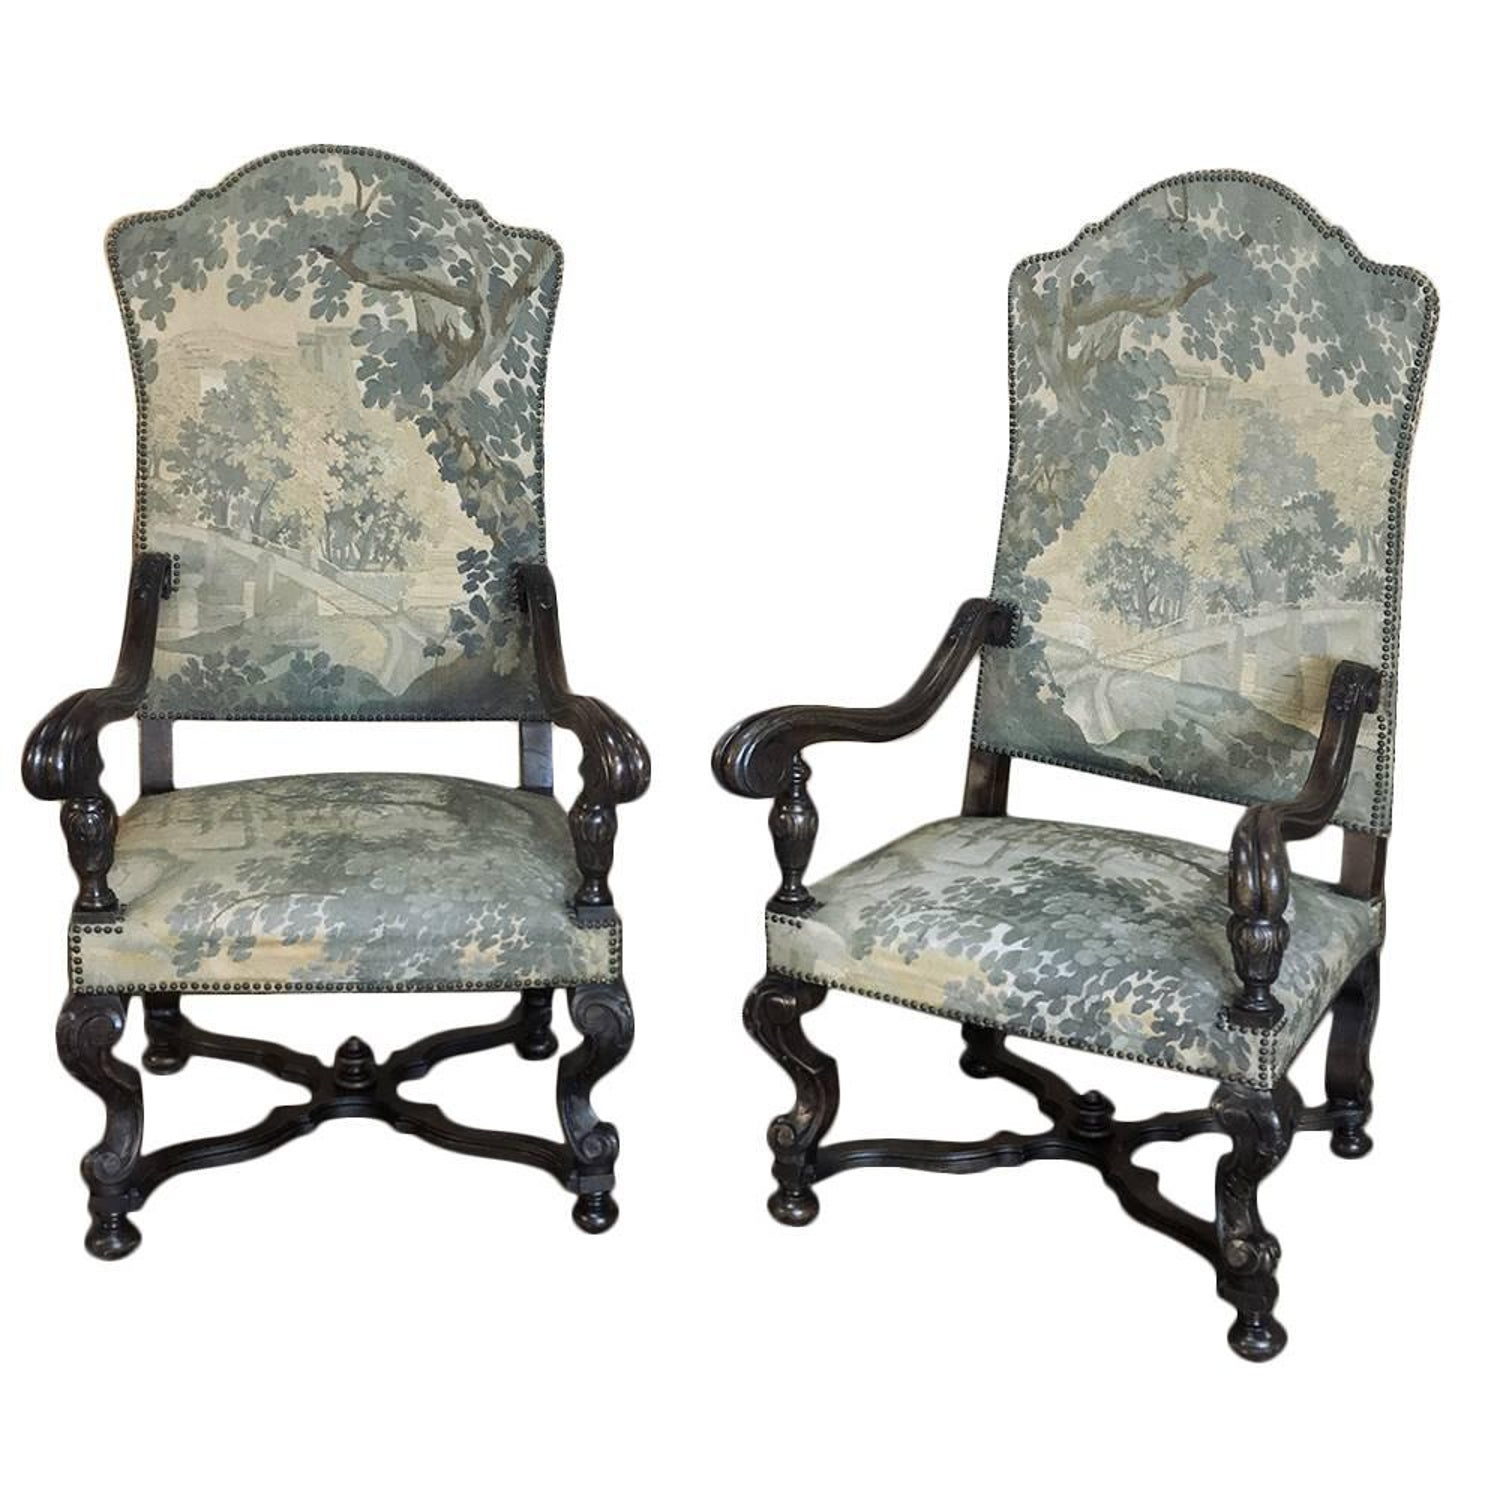 chaise louis xiv 15483 chaise id es. Black Bedroom Furniture Sets. Home Design Ideas